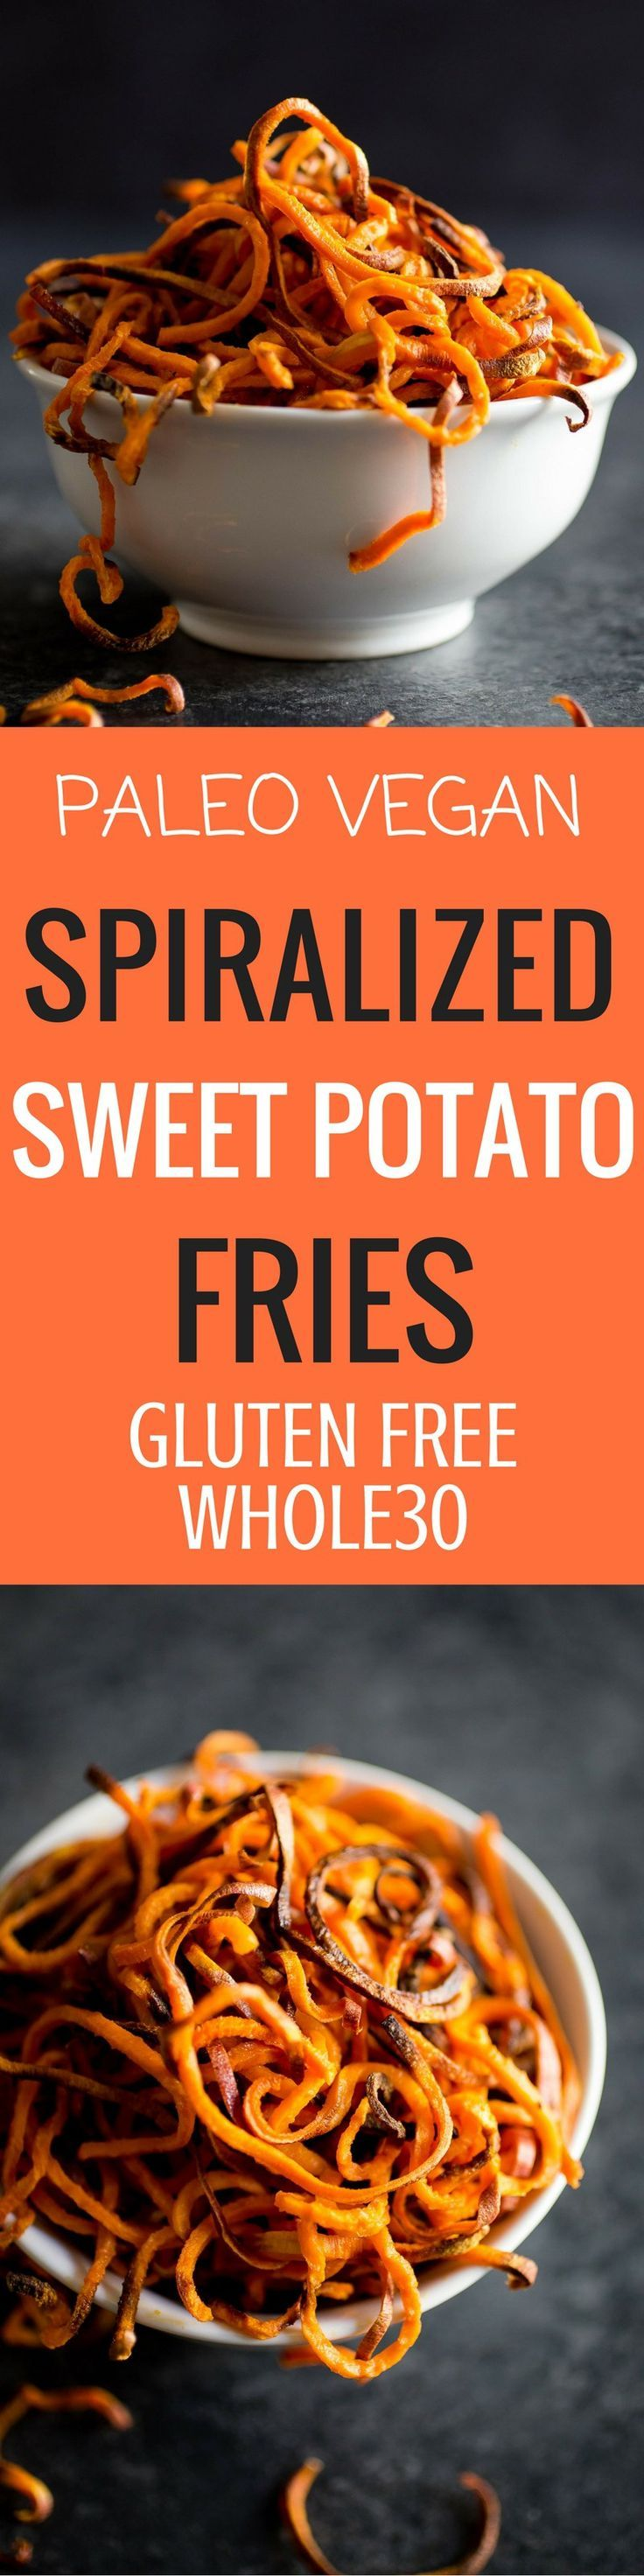 Best Paleo Sweet potato fries. Spiralized sweet potato fries. Paleo sweet potato recipes. Easy spiralized recipes.